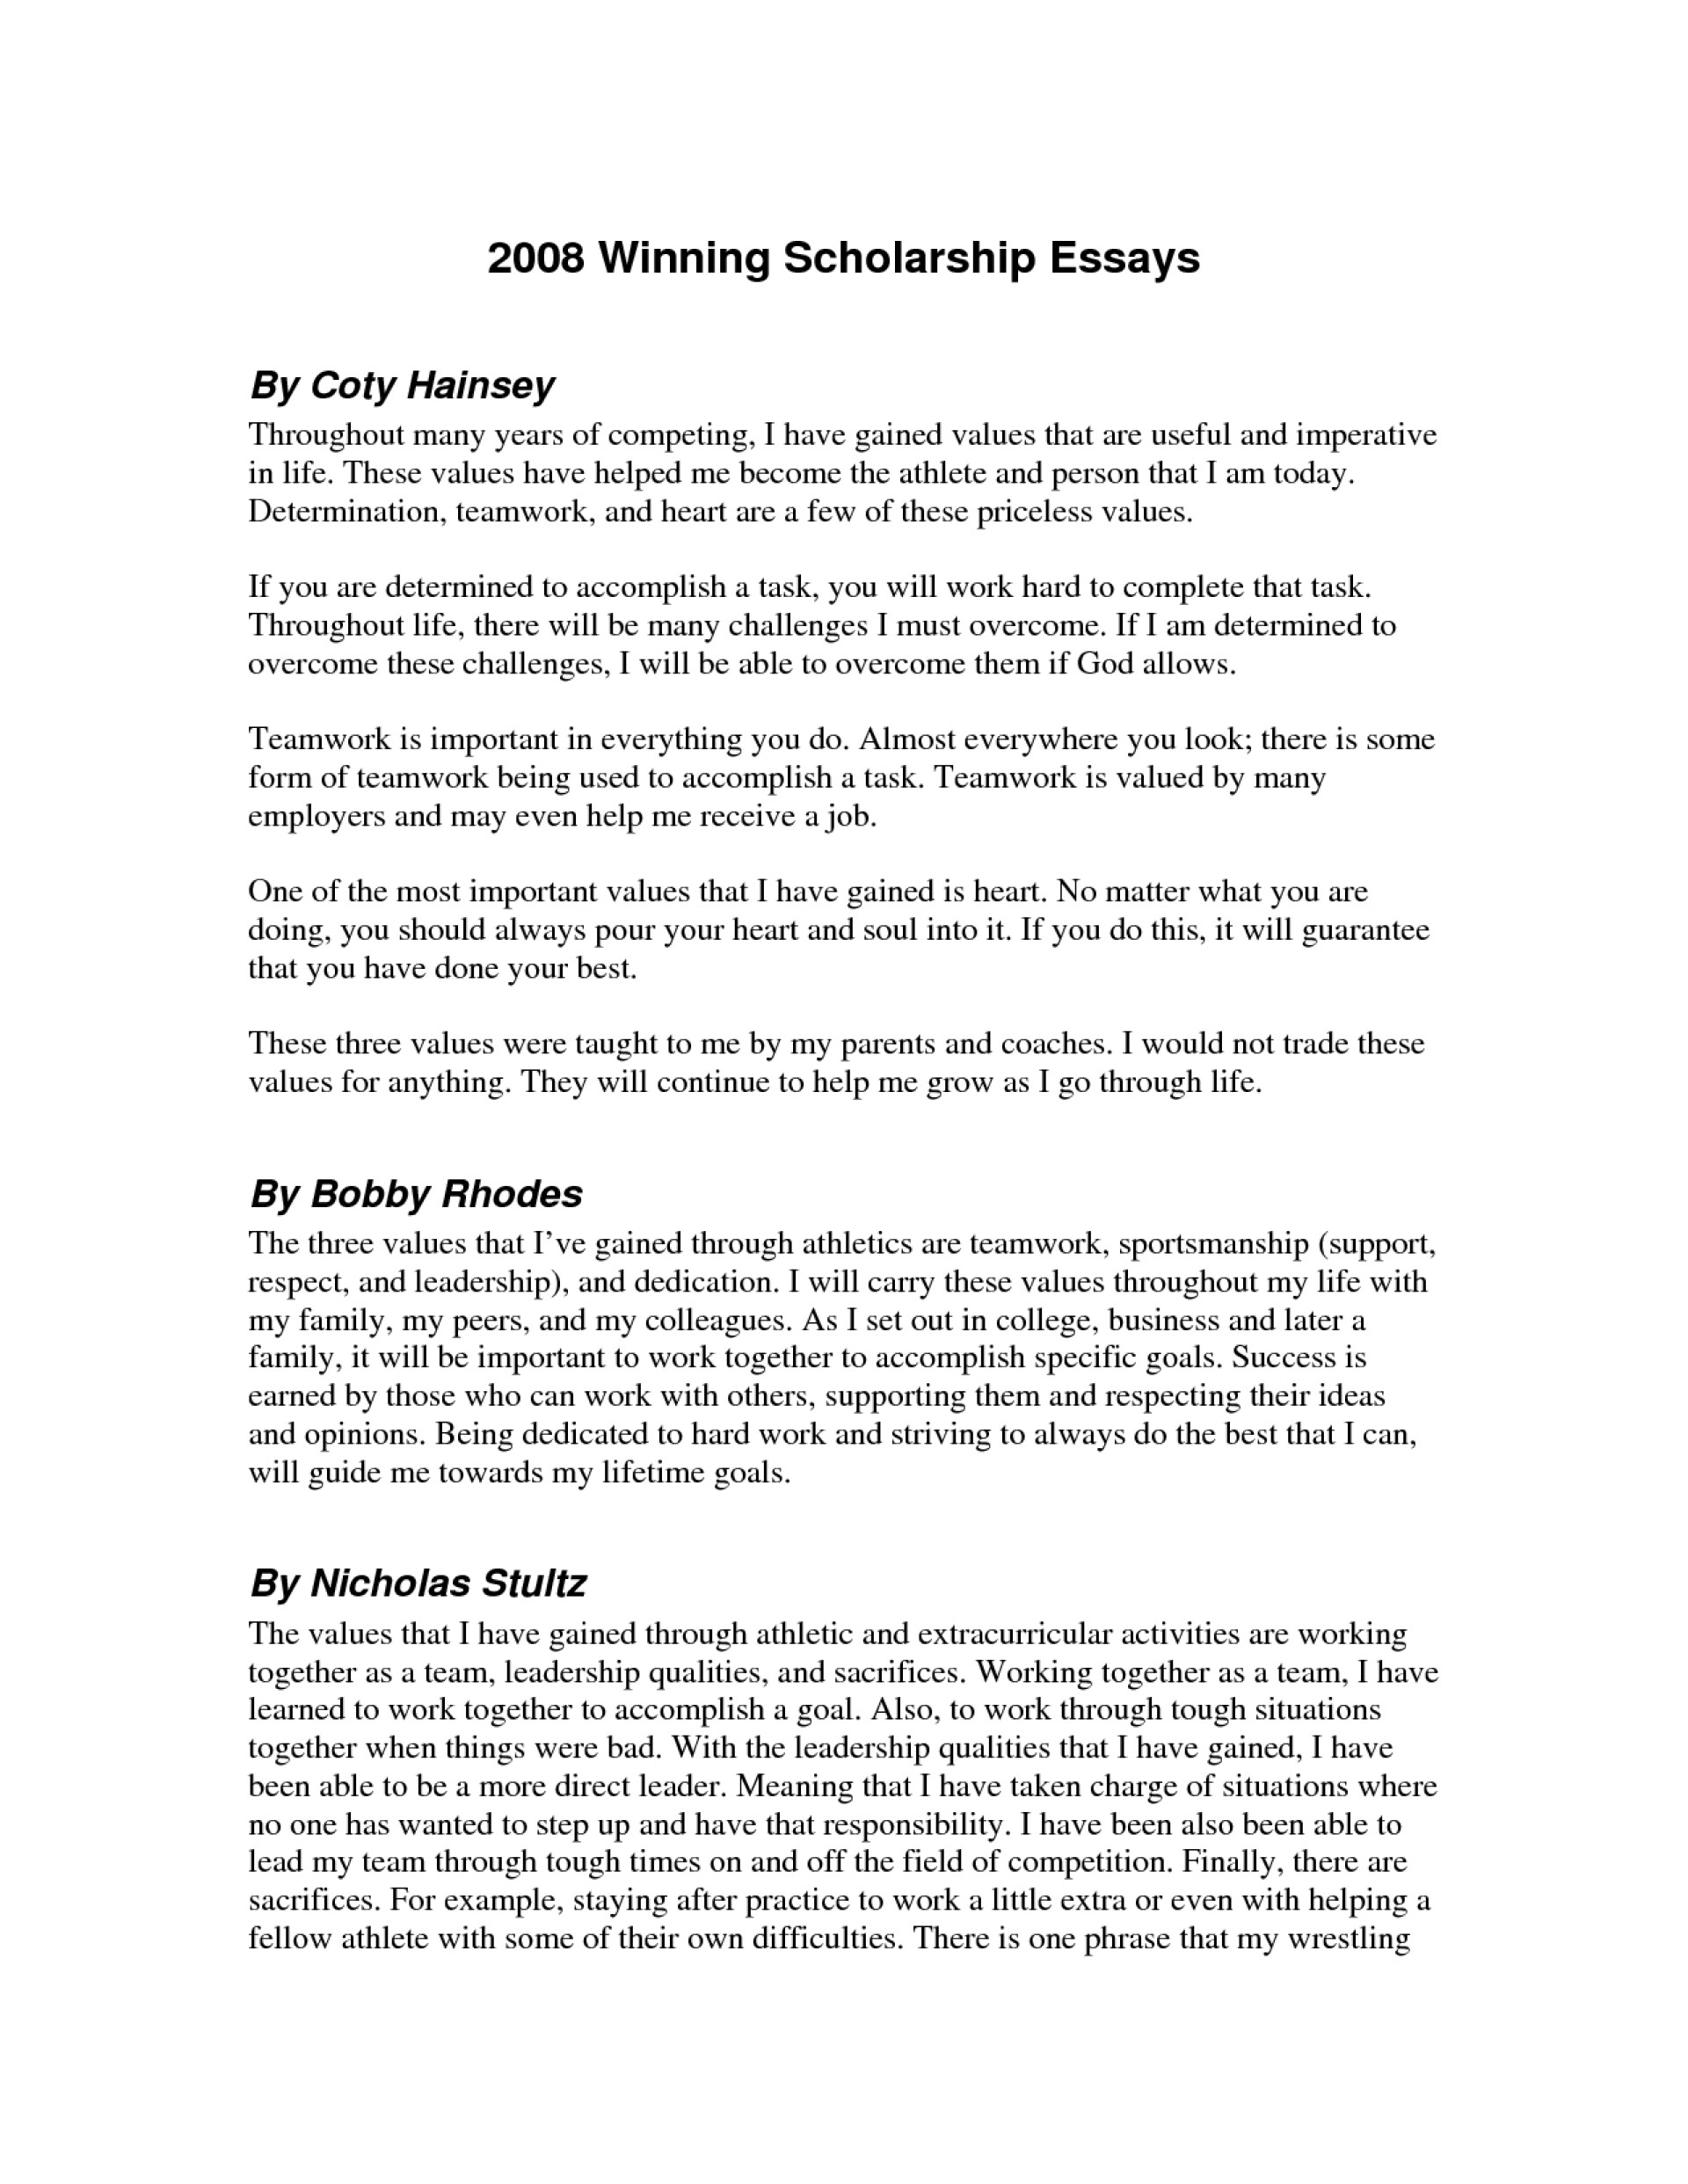 020 Essay Example Awesome Collection Of Best Scholarship Guidelines Unique What Do You Value Scholarships With Singular Essays Without Writing For High School Juniors Class 2020 No 2019 1920